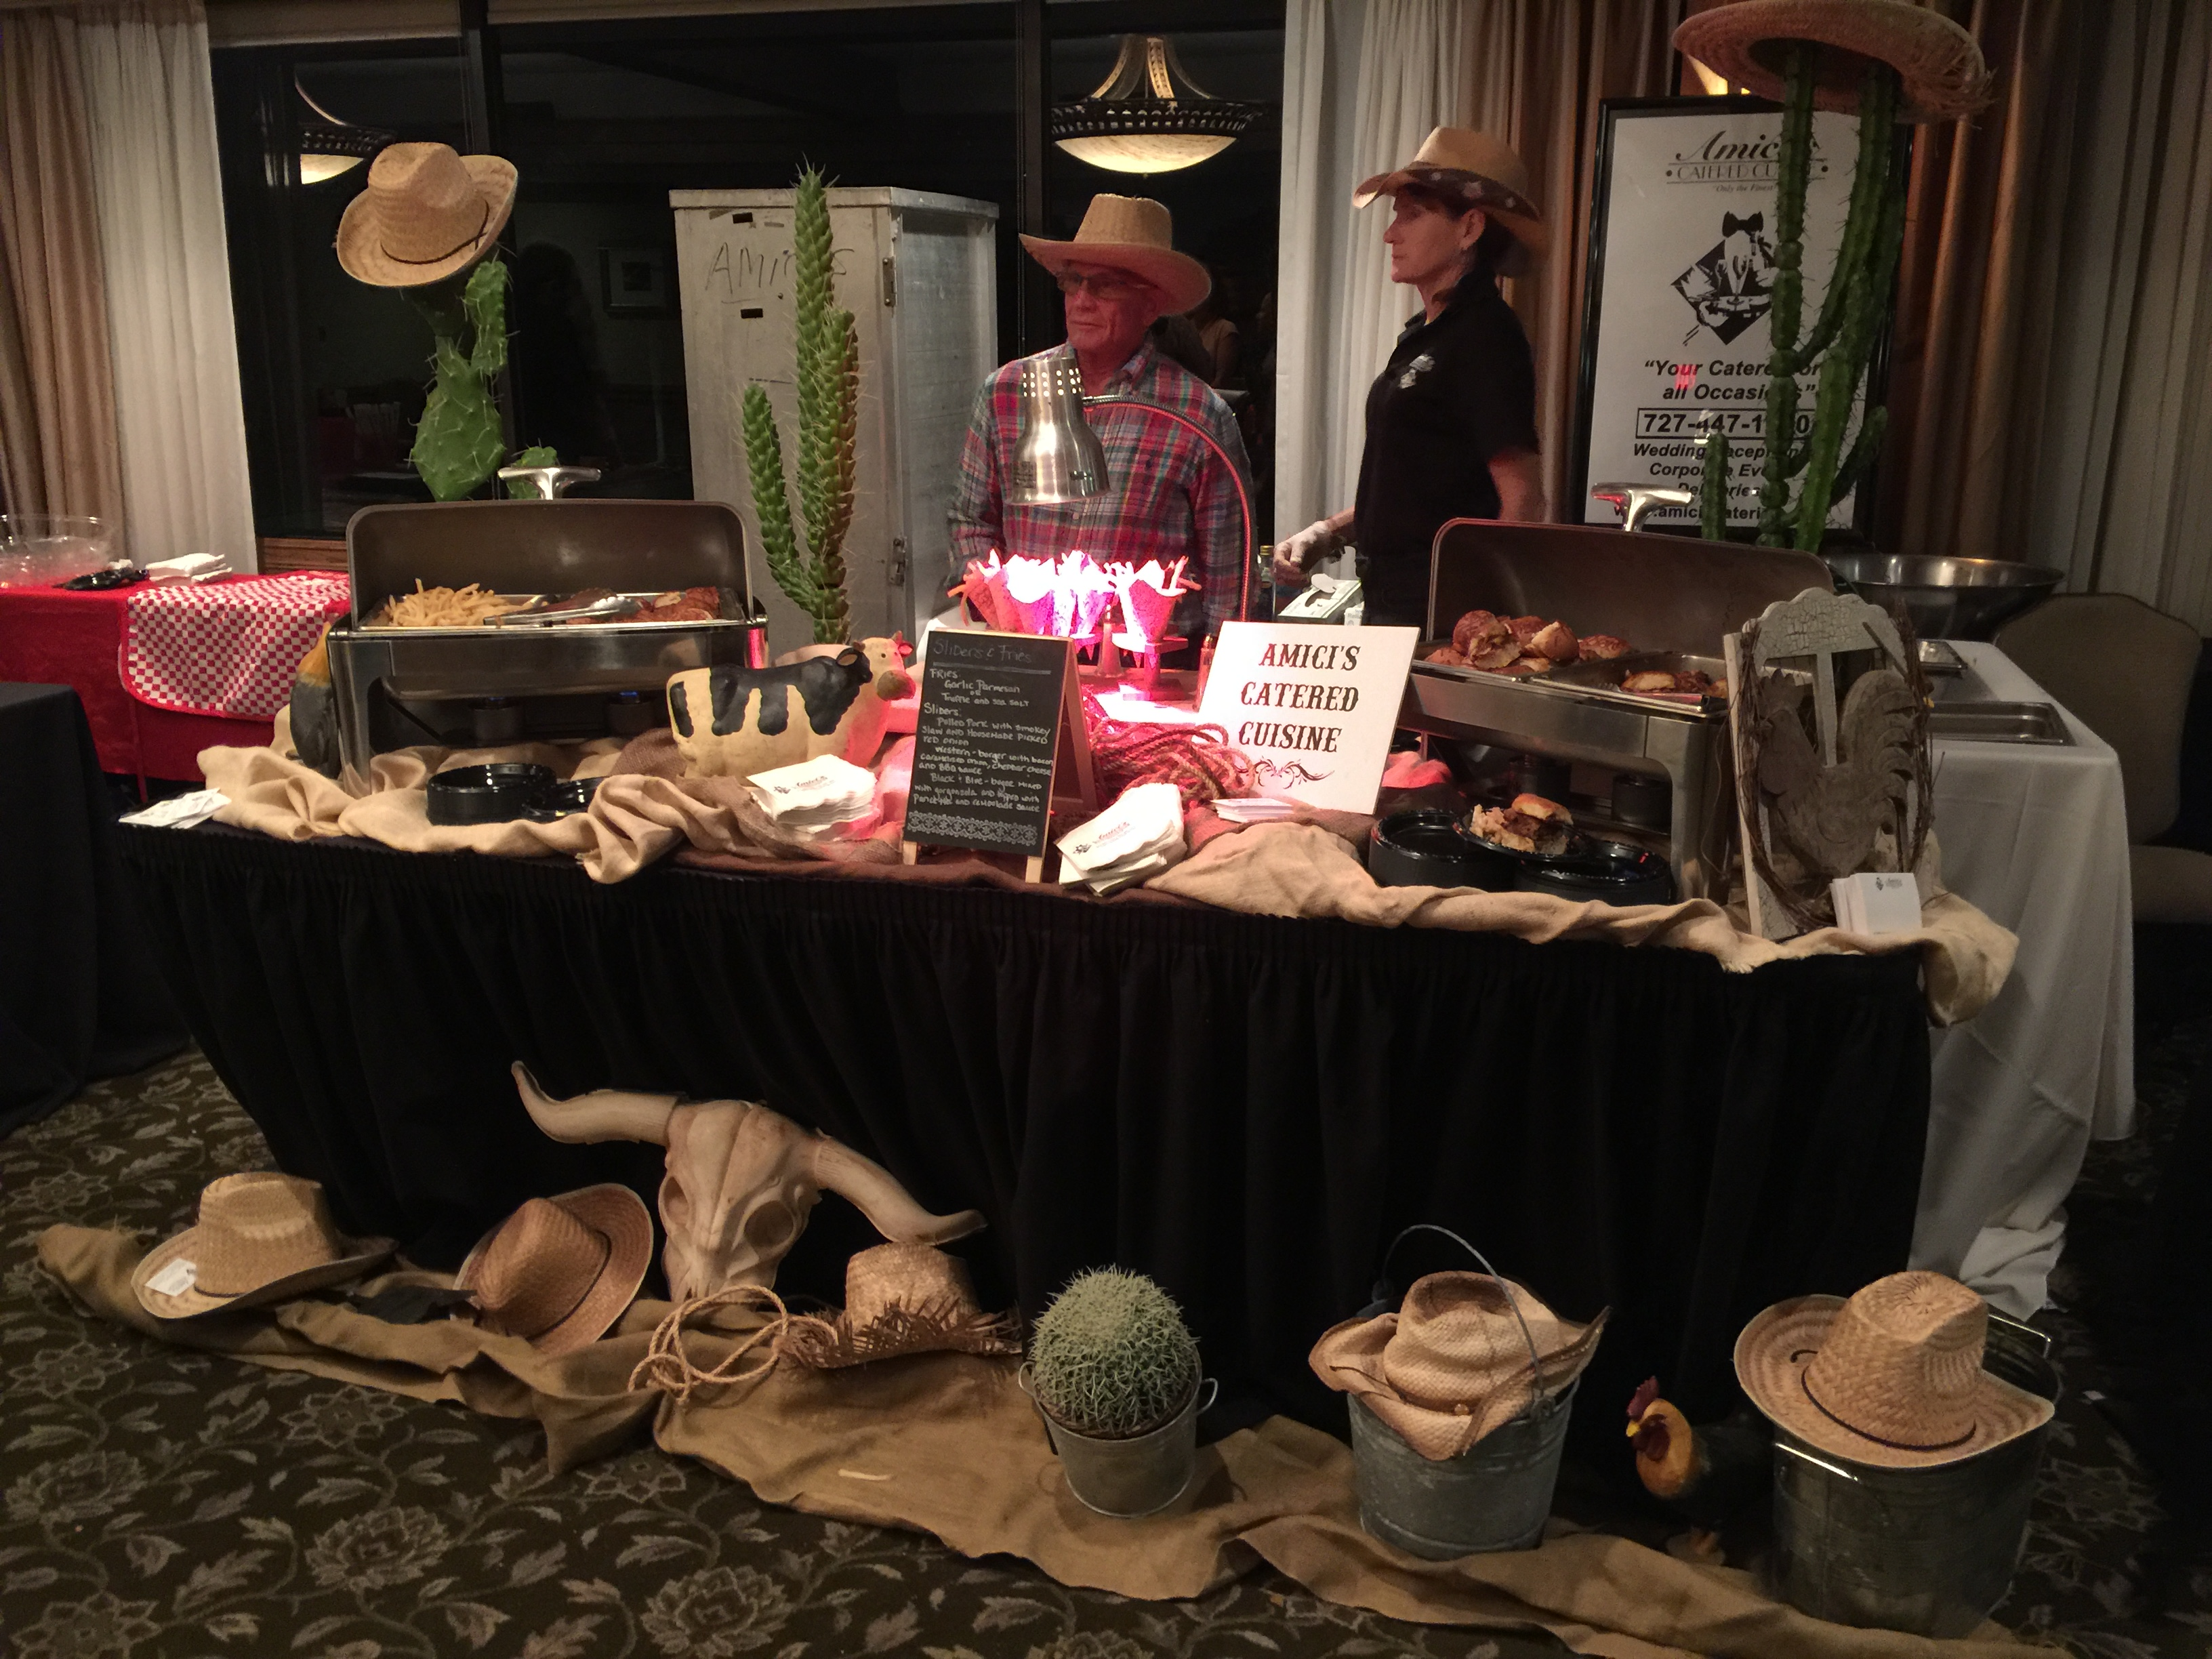 Amicis Setup at a Coral Event